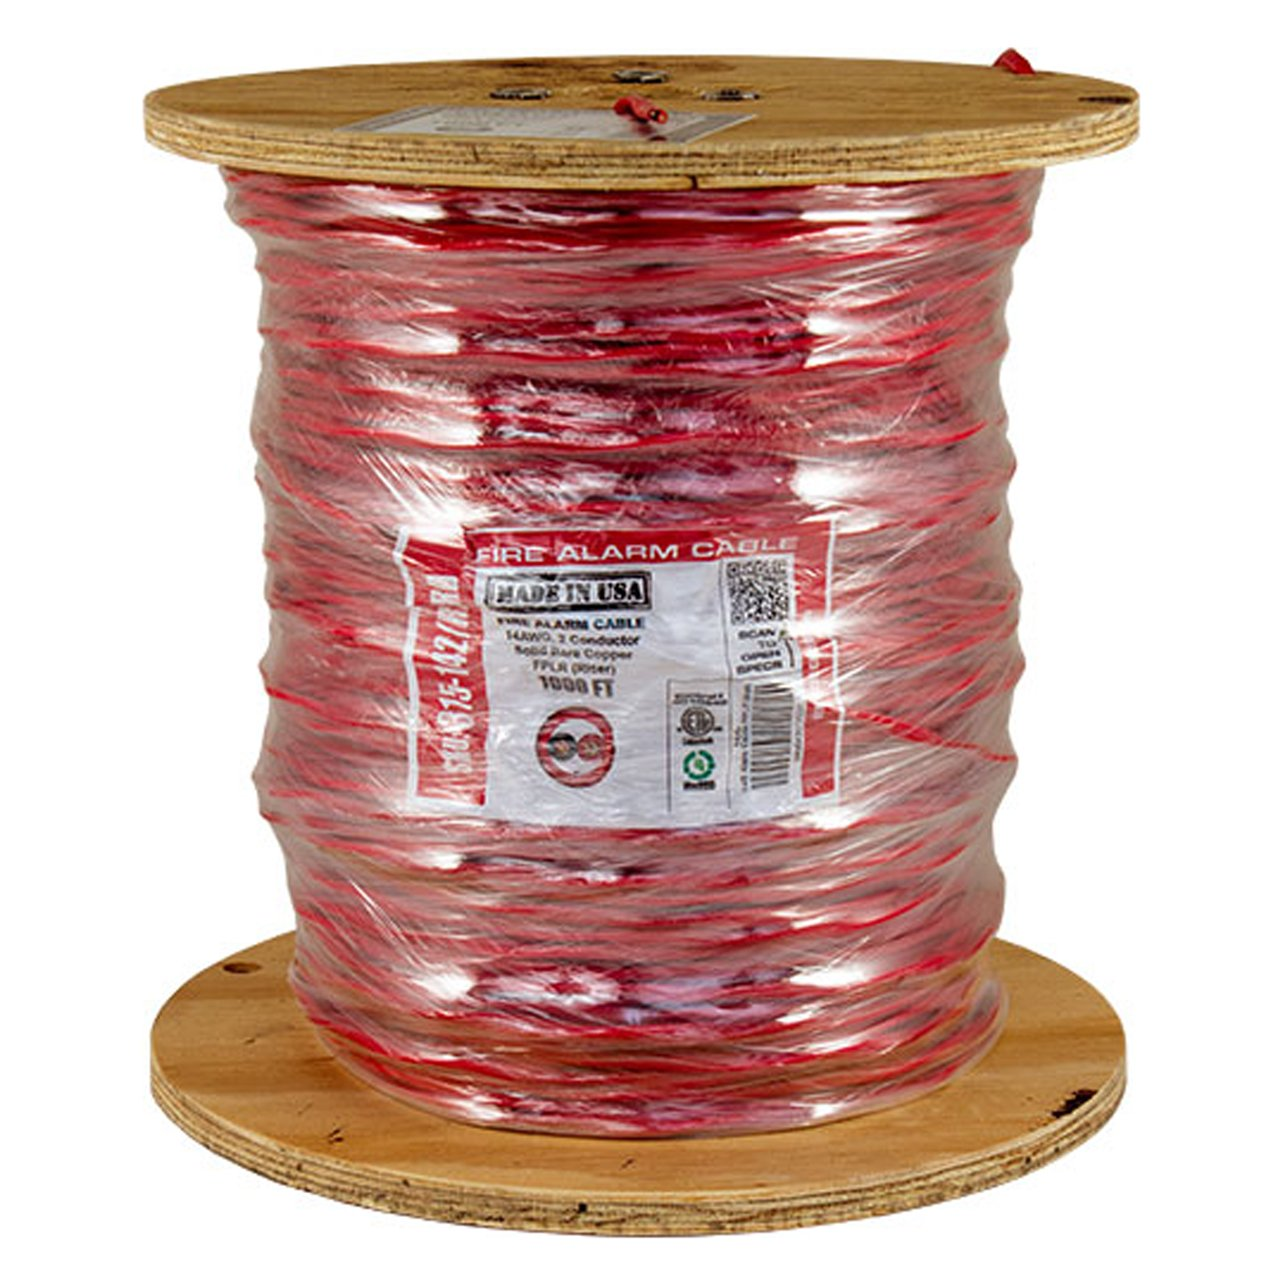 Vertical Cable Fire Alarm Cable, 14 AWG, 2 Conductor, Solid, Unshielded, FPLR (Riser), 1000ft Spool, Red - Made in USA by Vertical Cable